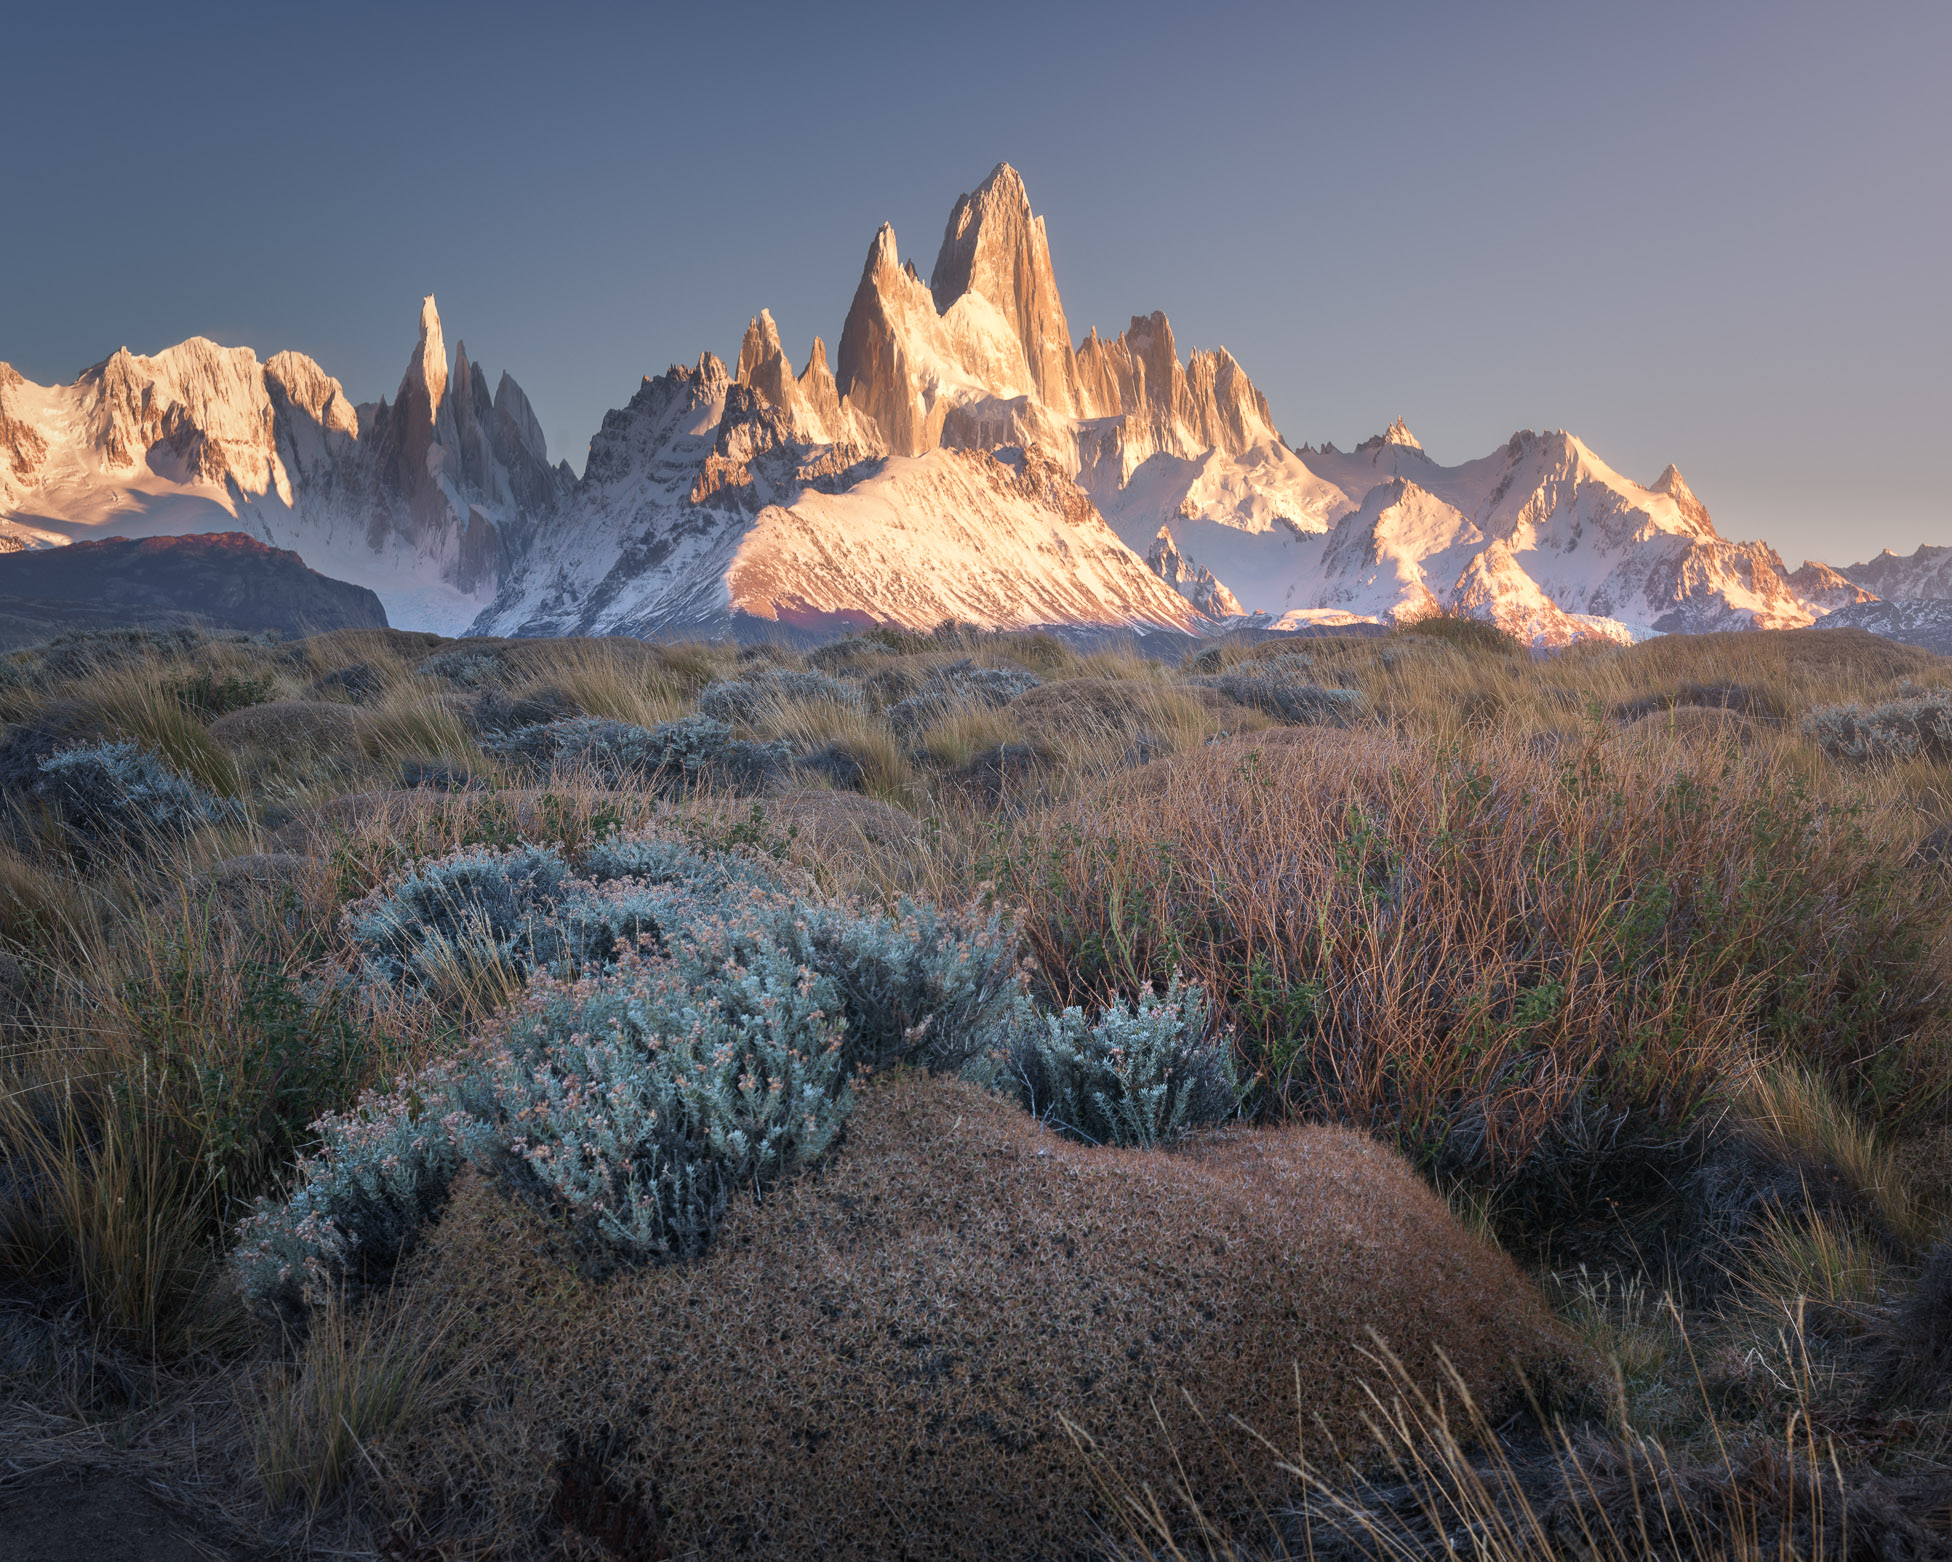 Fitz Roy and Cerro Torre in the Morning, Los Glaciares National Park, Argentina